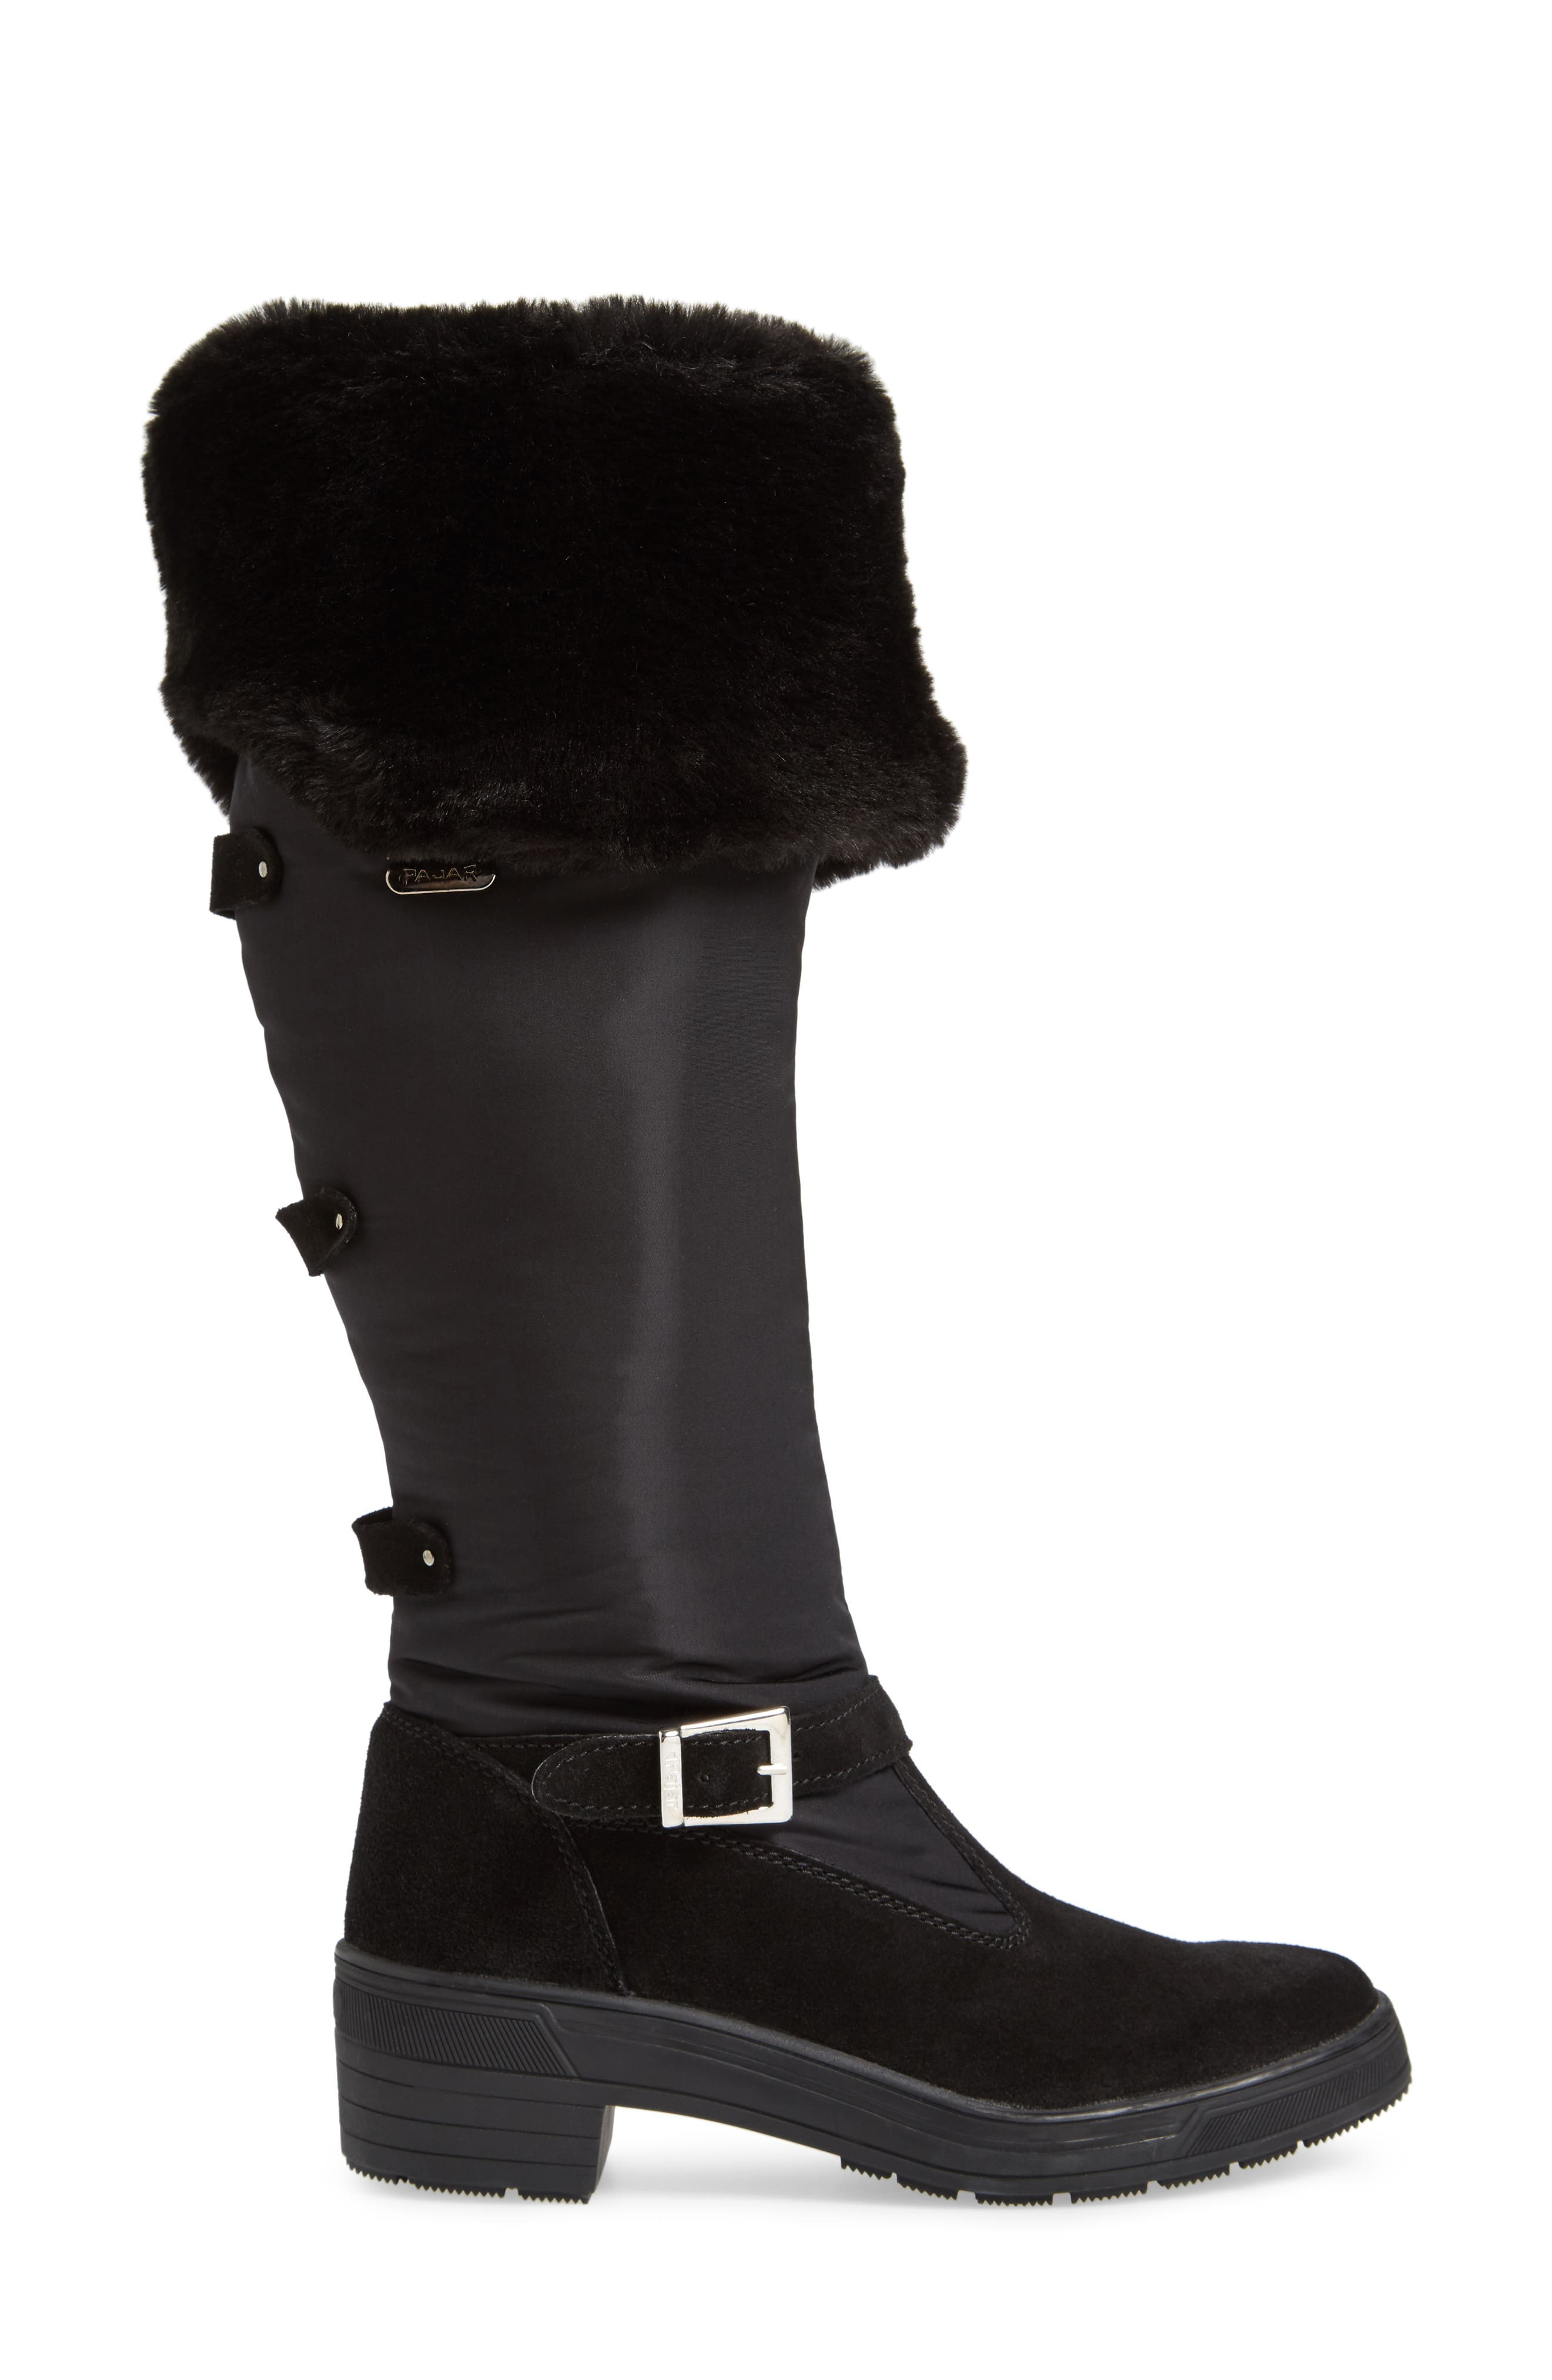 Norah Waterproof Boot with Faux Fur Cuff,                             Alternate thumbnail 3, color,